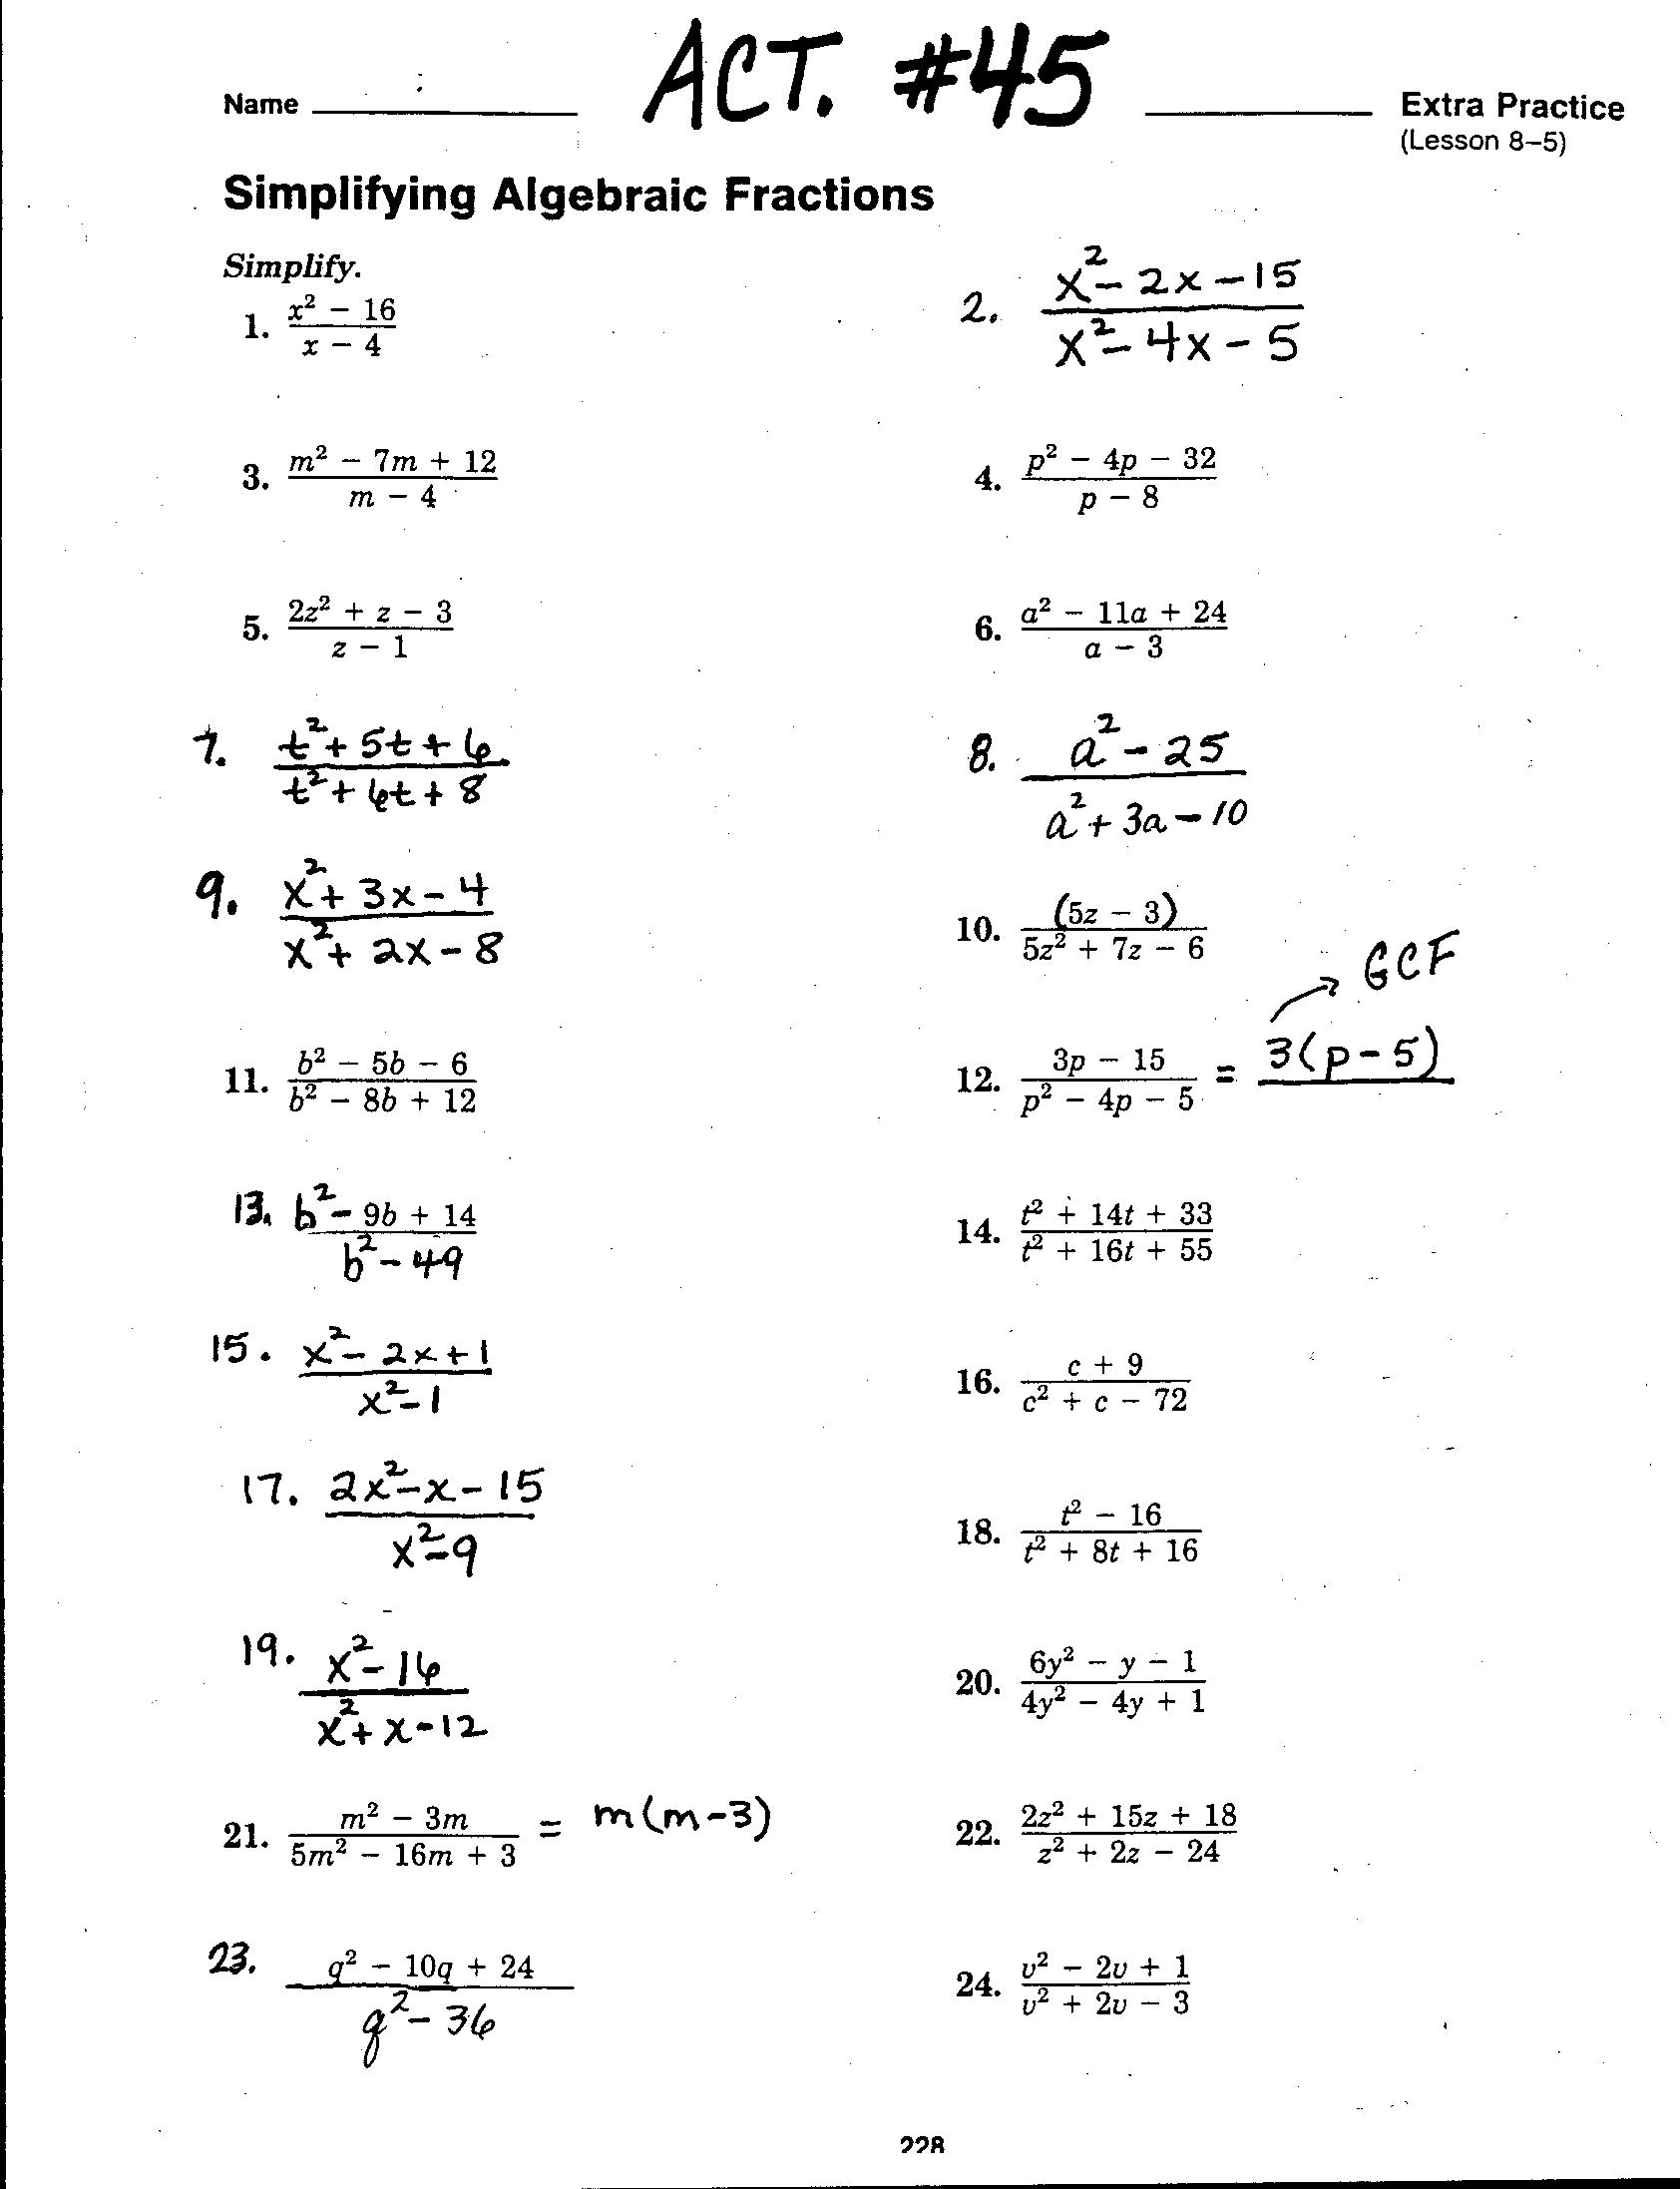 Simplify Rational Exponents Worksheet | ABITLIKETHIS